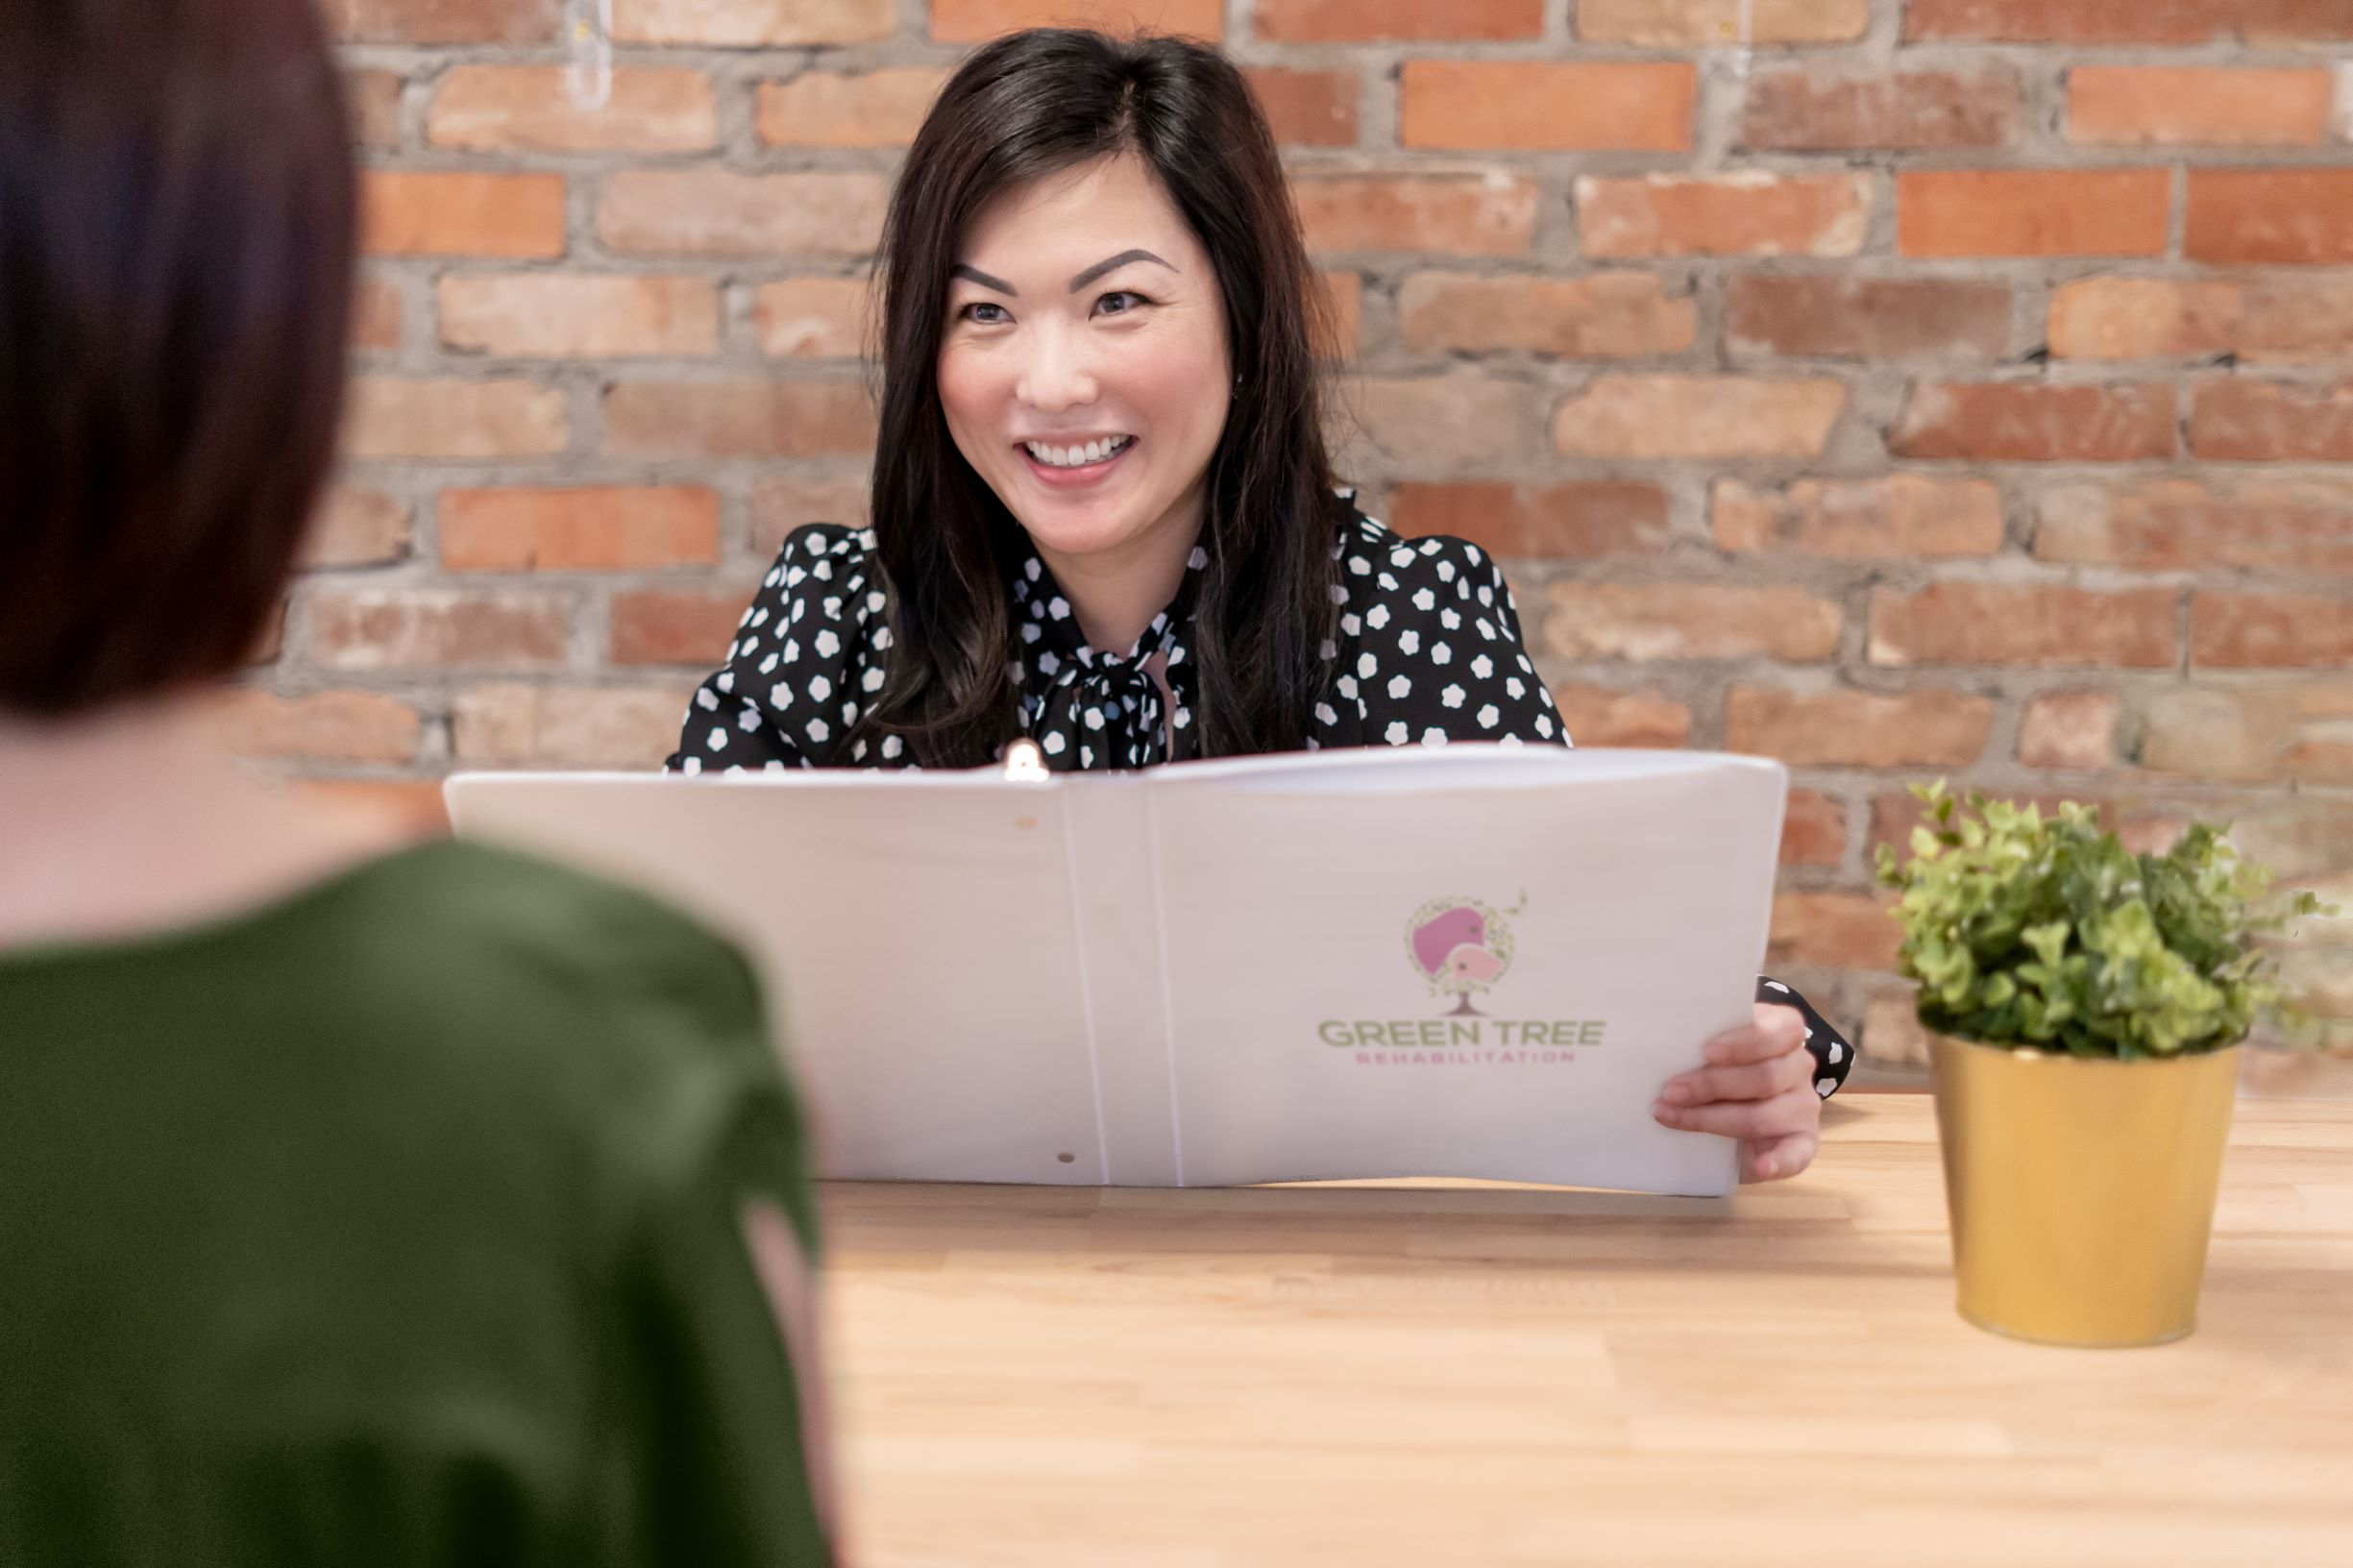 Occupational therapist smiling, and welcoming client while sitting across the desk from them.